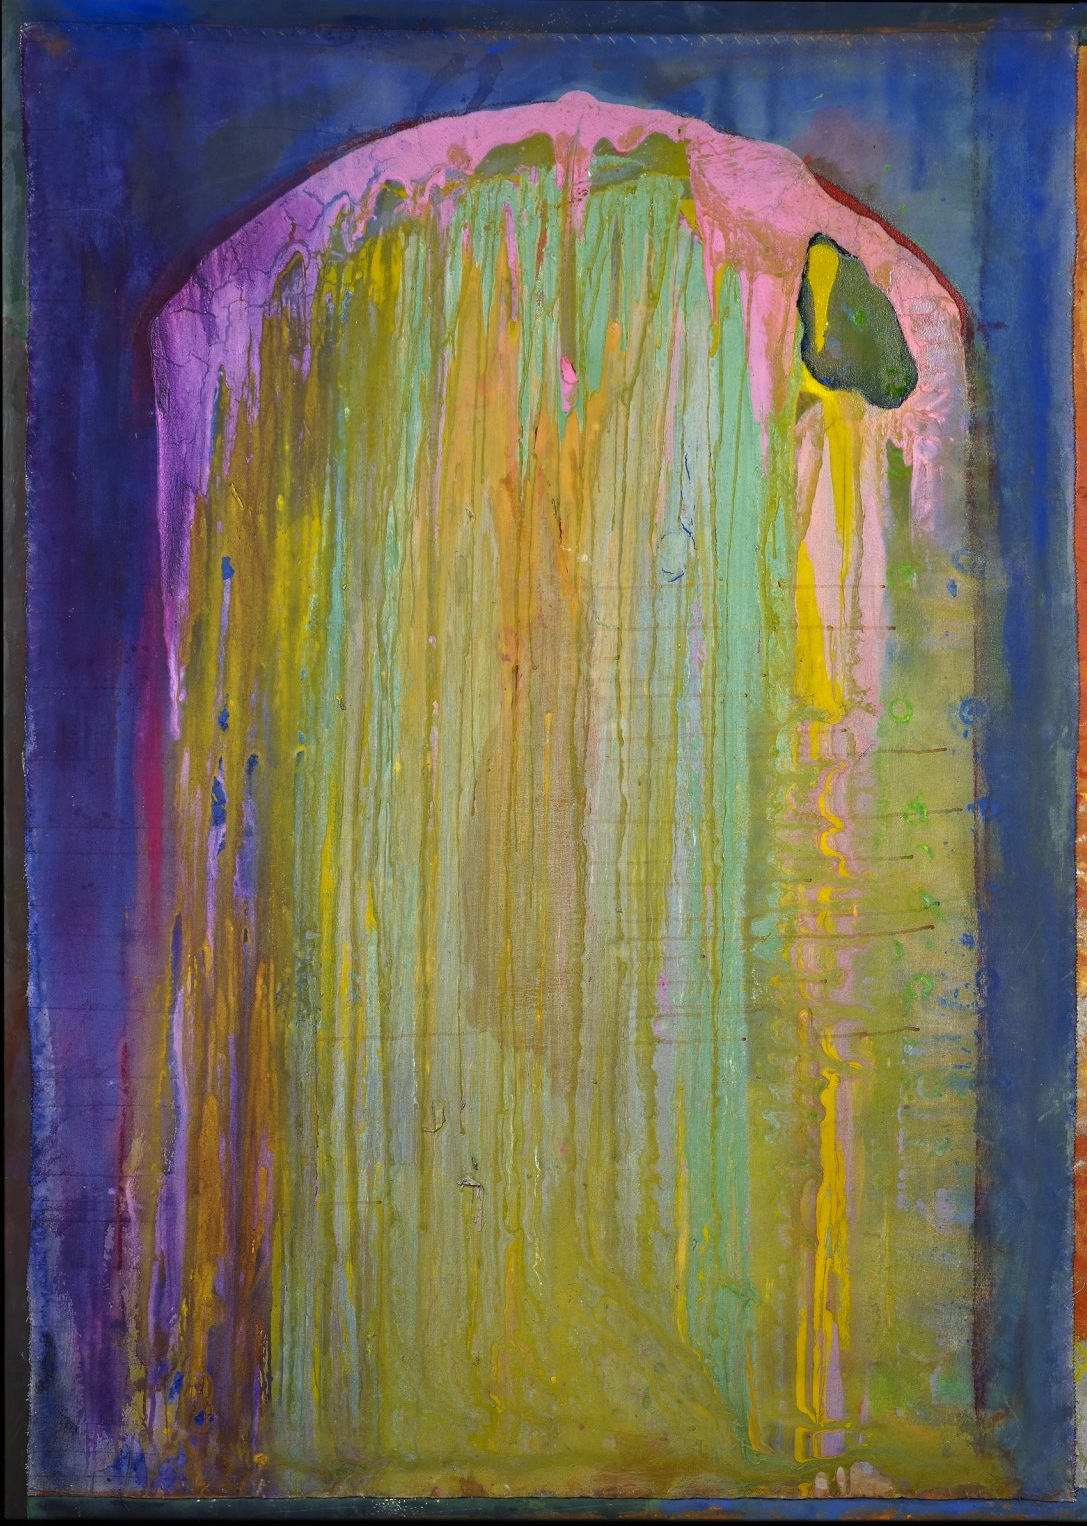 Frank Bowling, Upright, 2012, acrylic on canvas, 74 x 53 inches (courtesy of Spa